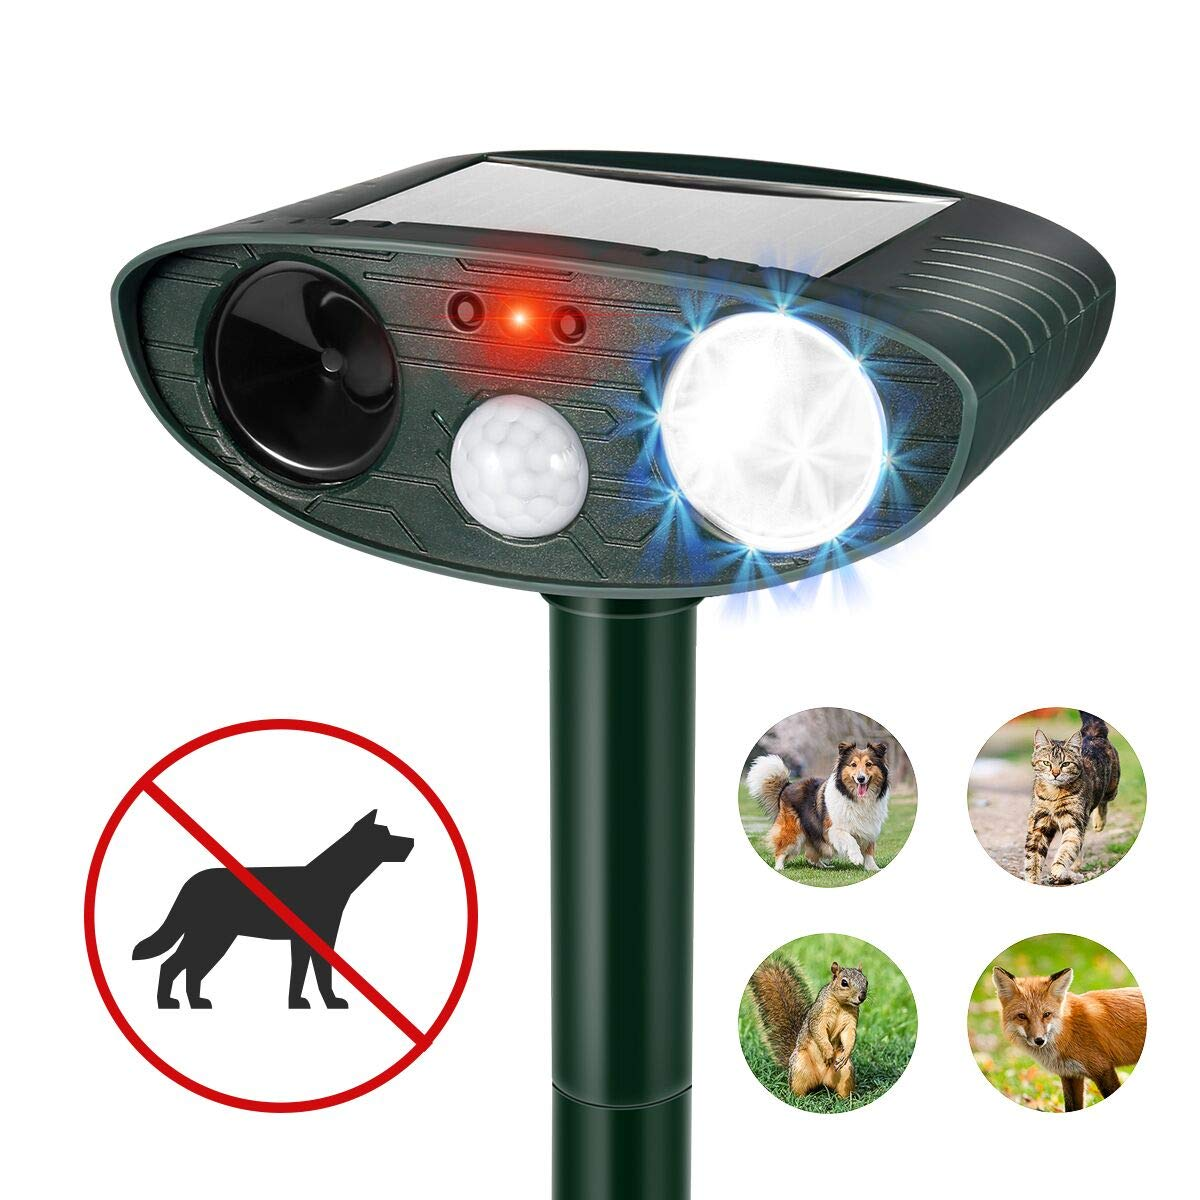 PET CAREE Ultrasonic Dog Chaser, Solar Powered and Waterproof PIR Sensor Chaser for Cats, Dogs, Birds and Skunks and More